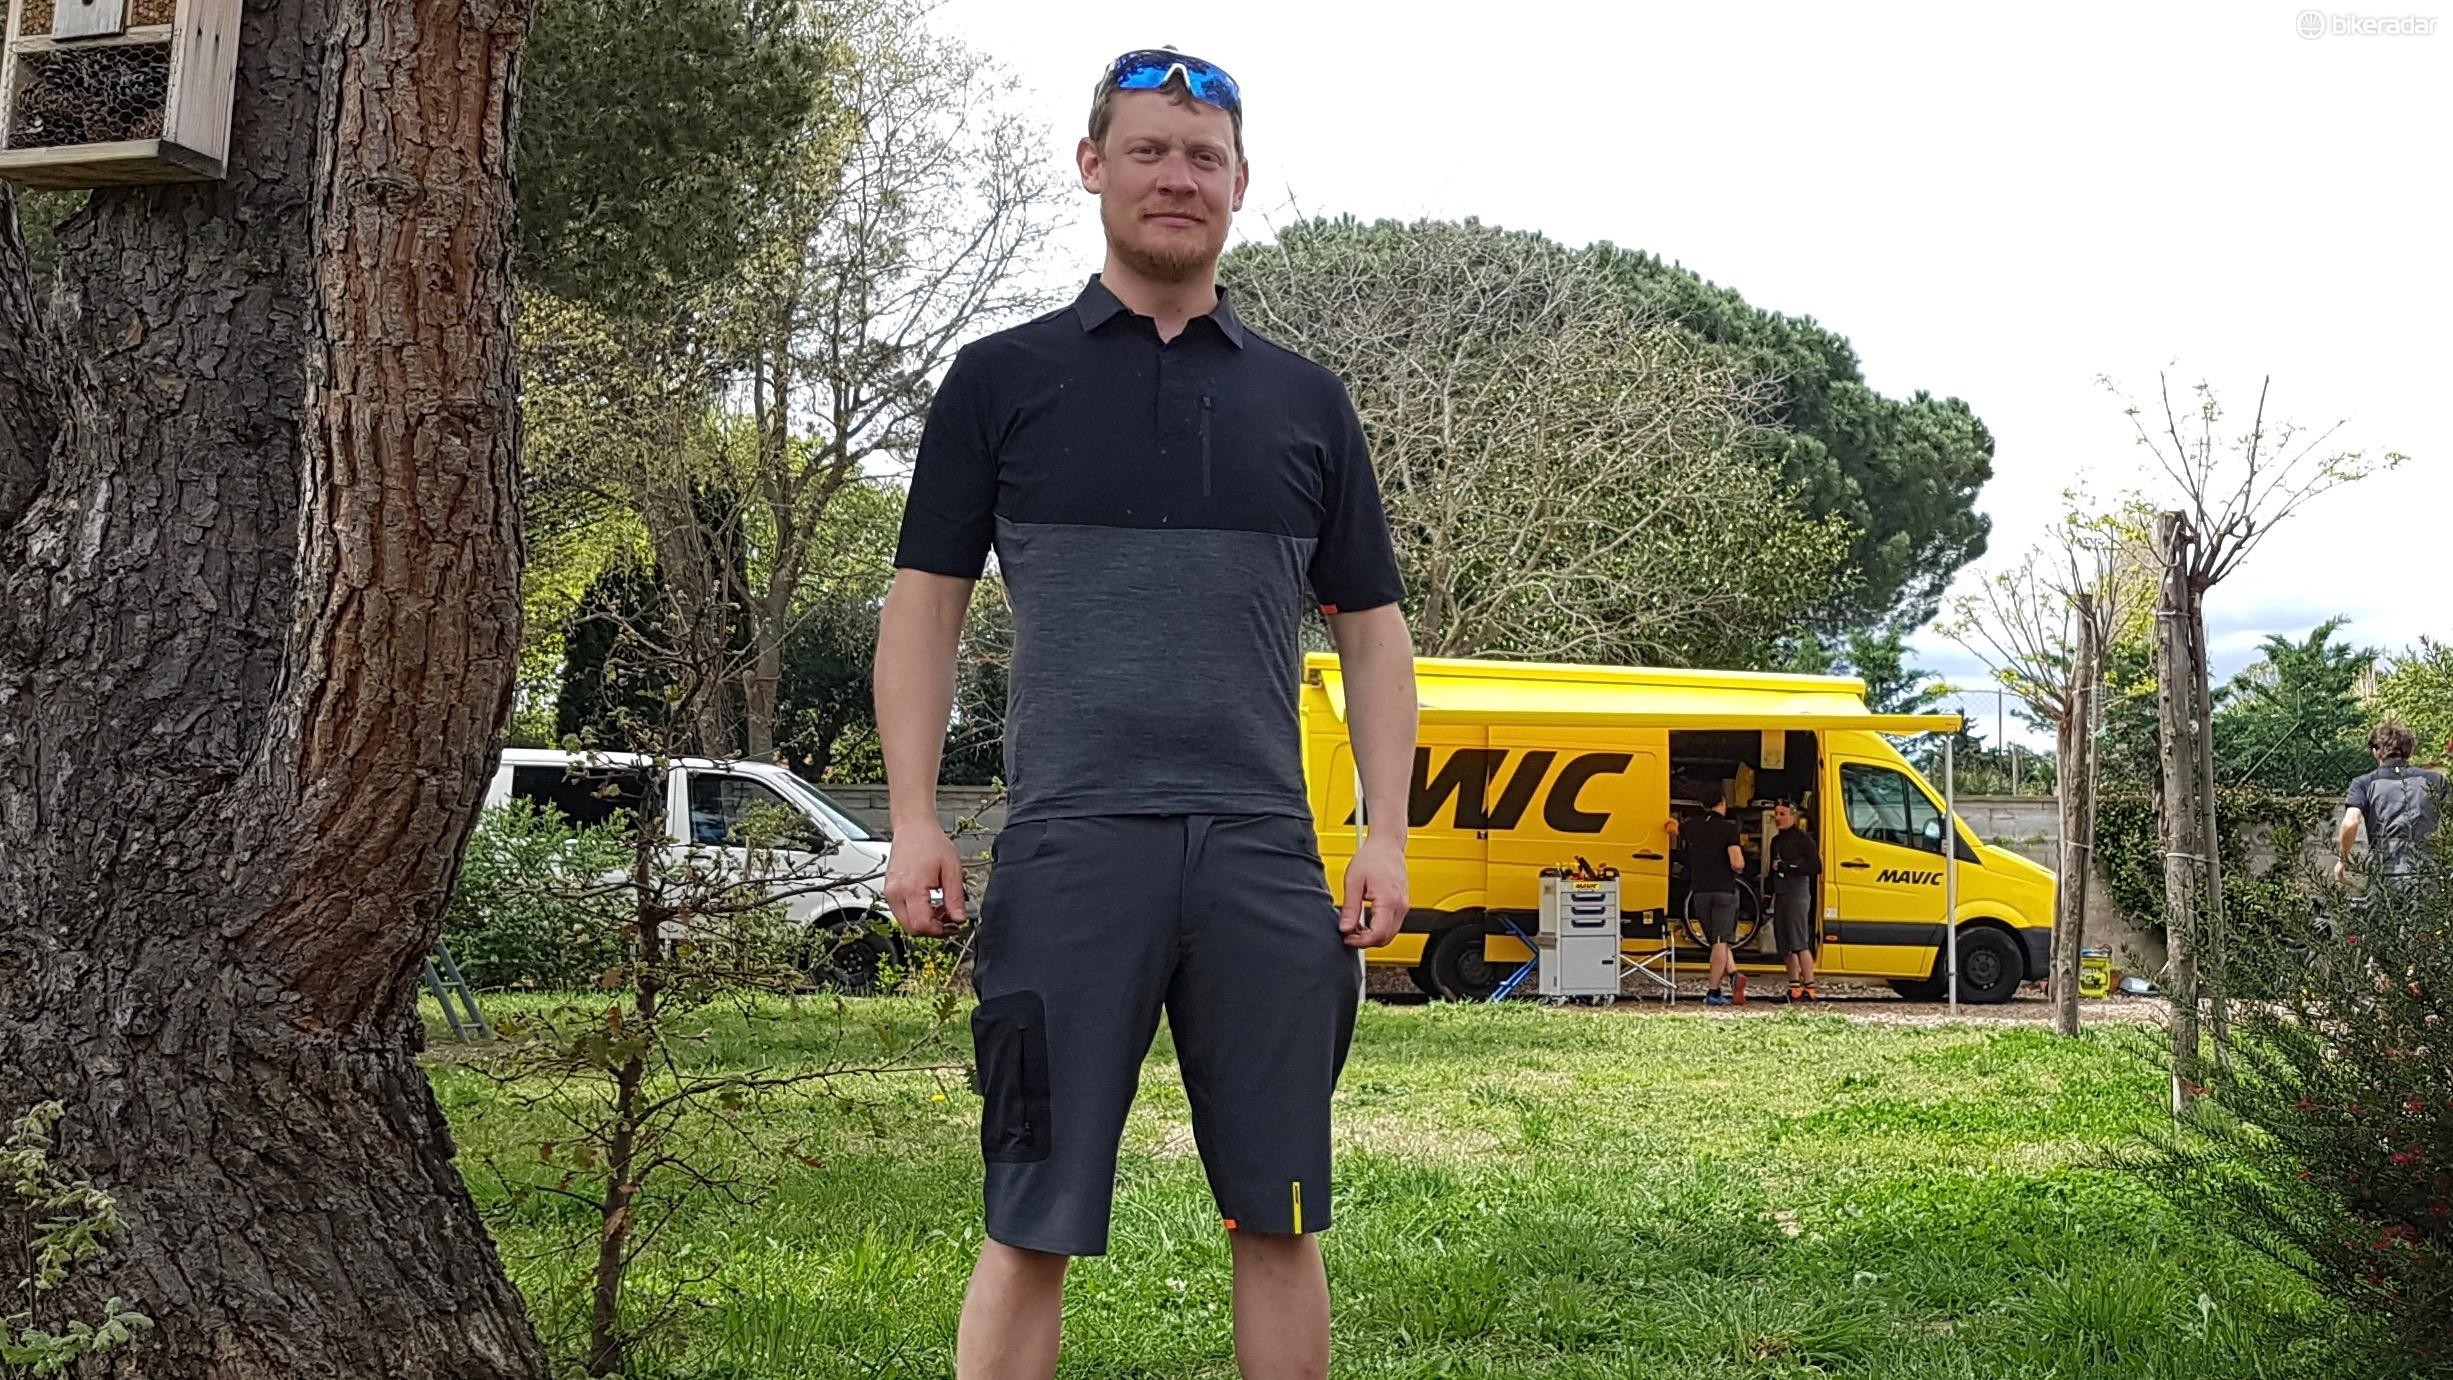 Mavic's AllRoad Jersey and Short are designed to be the perfect outfit for gravel riding